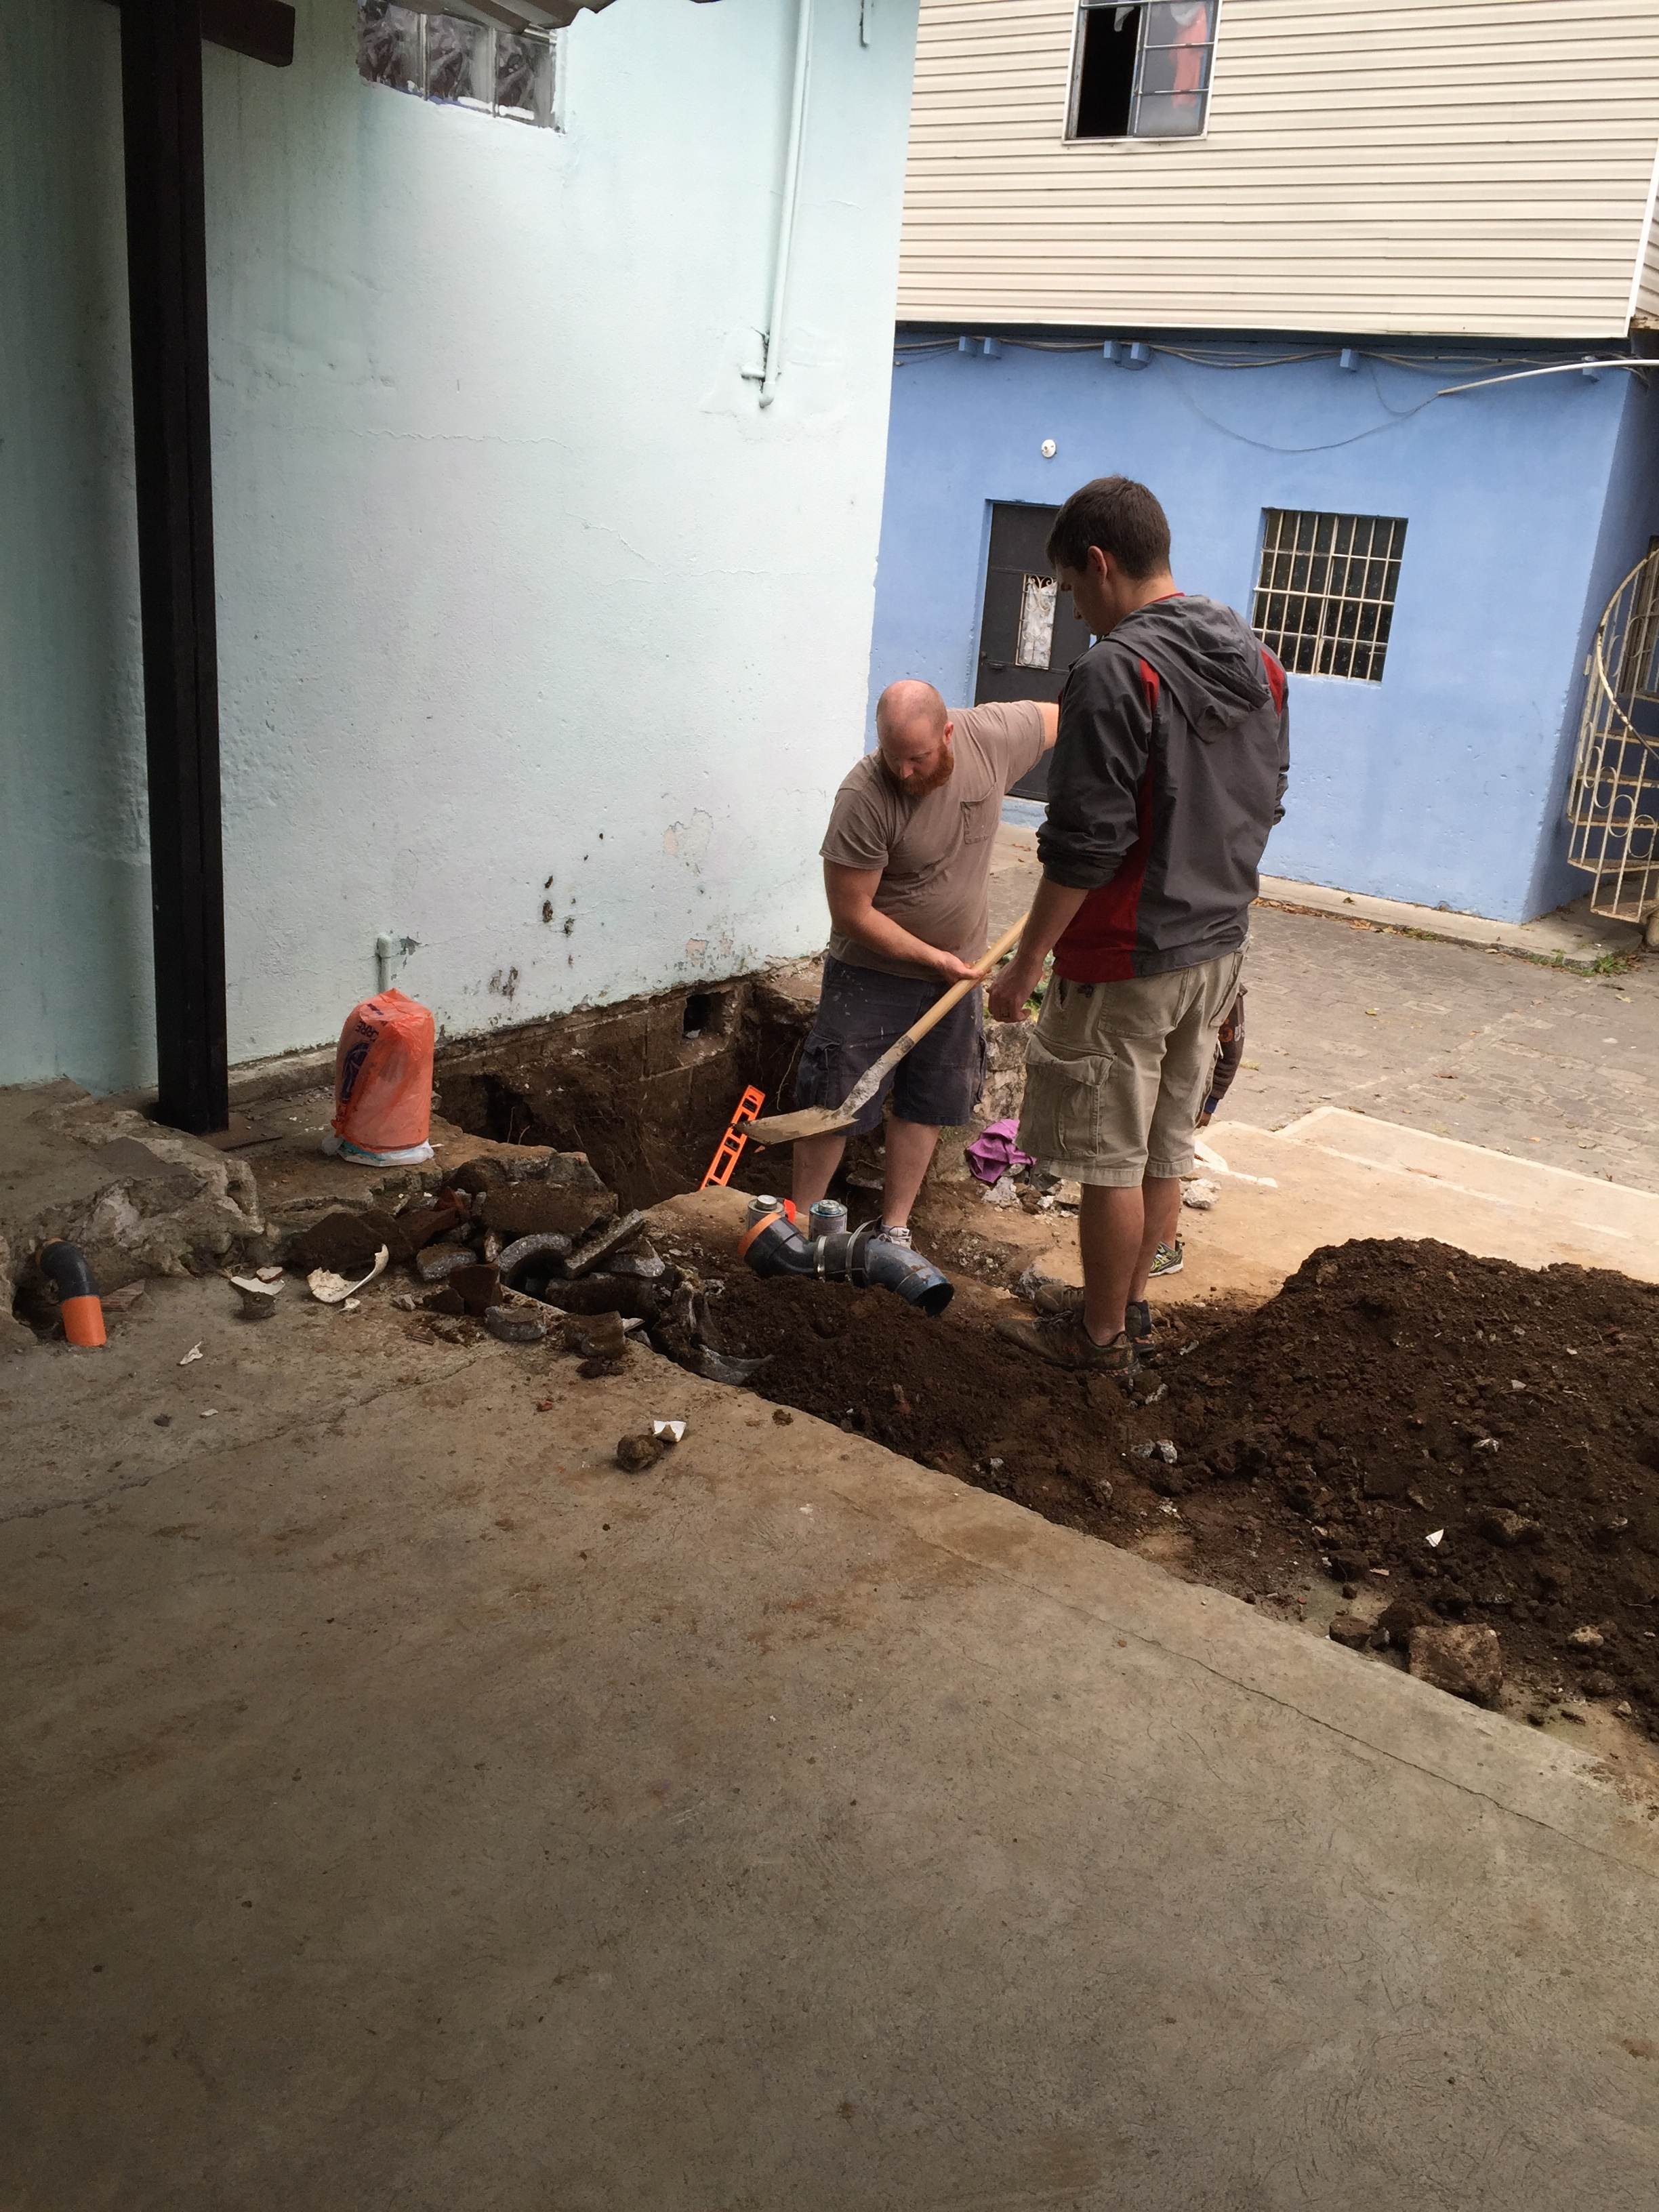 Chad and Adam in plumbing mode